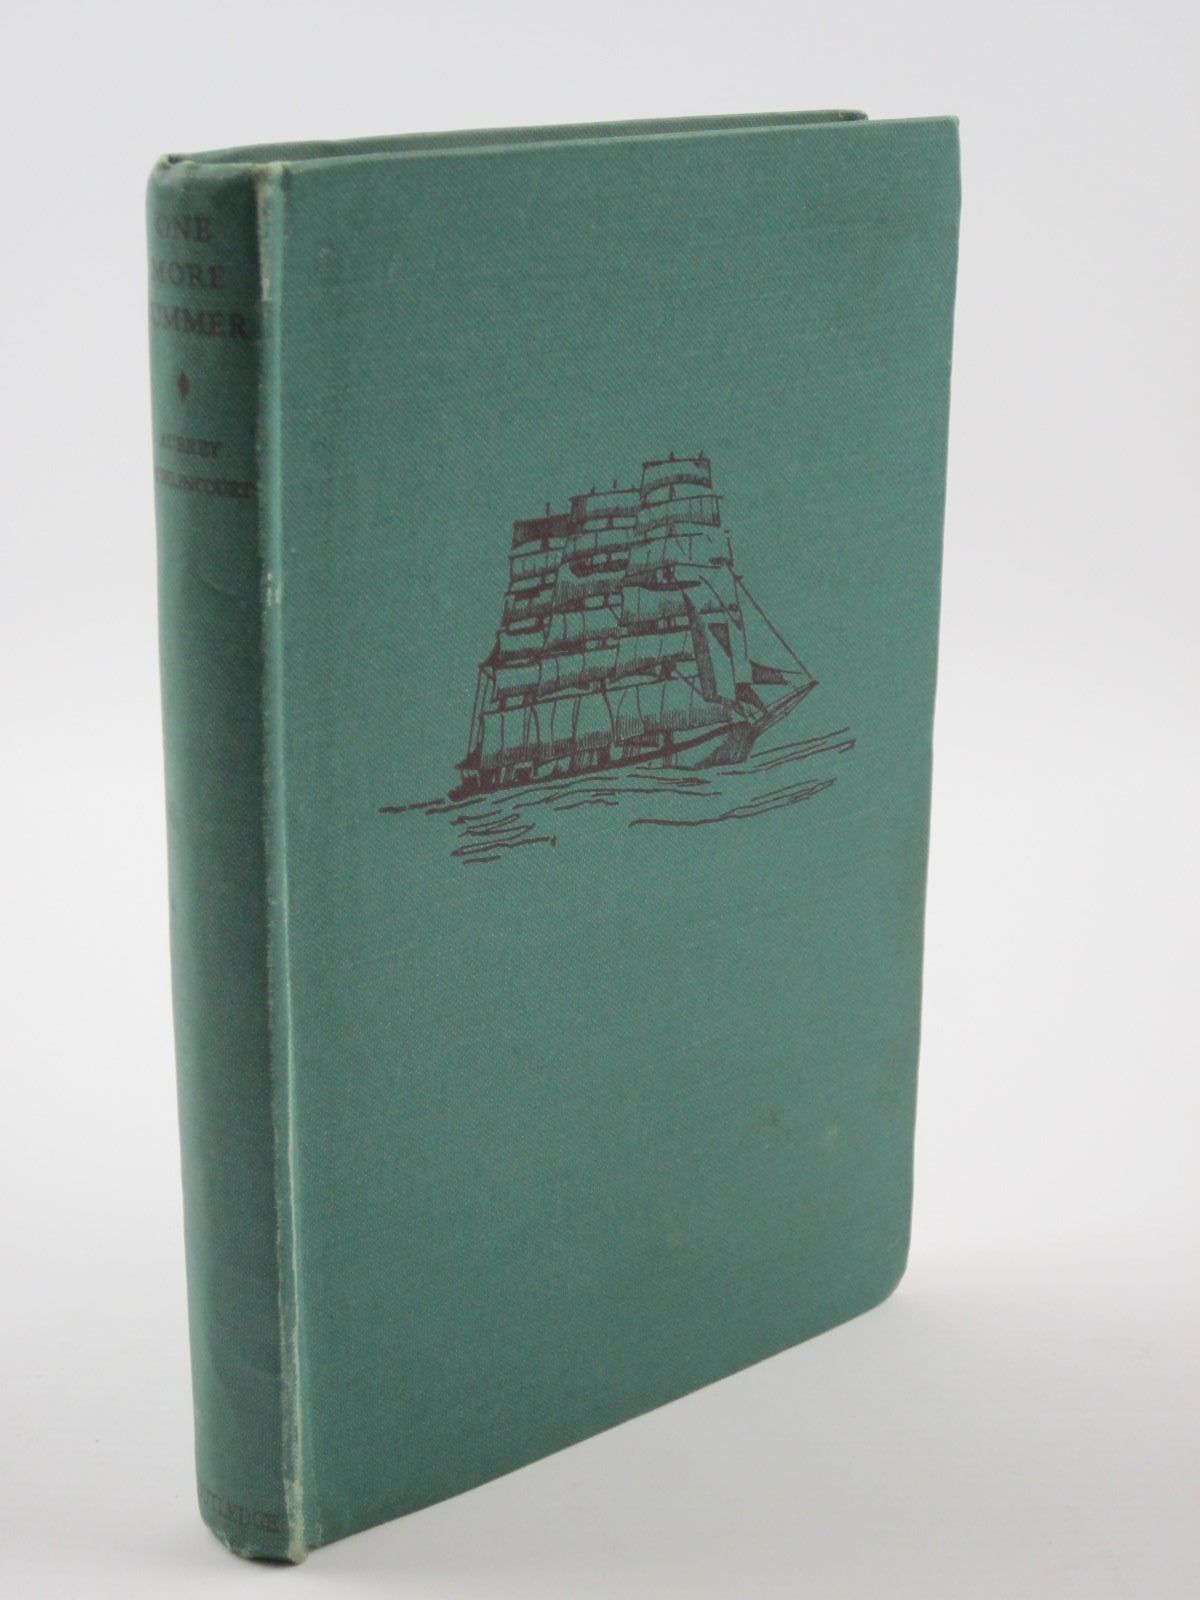 Photo of ONE MORE SUMMER written by De Selincourt, Aubrey illustrated by De Selincourt, Guy published by George Routledge & Sons Ltd. (STOCK CODE: 1309283)  for sale by Stella & Rose's Books